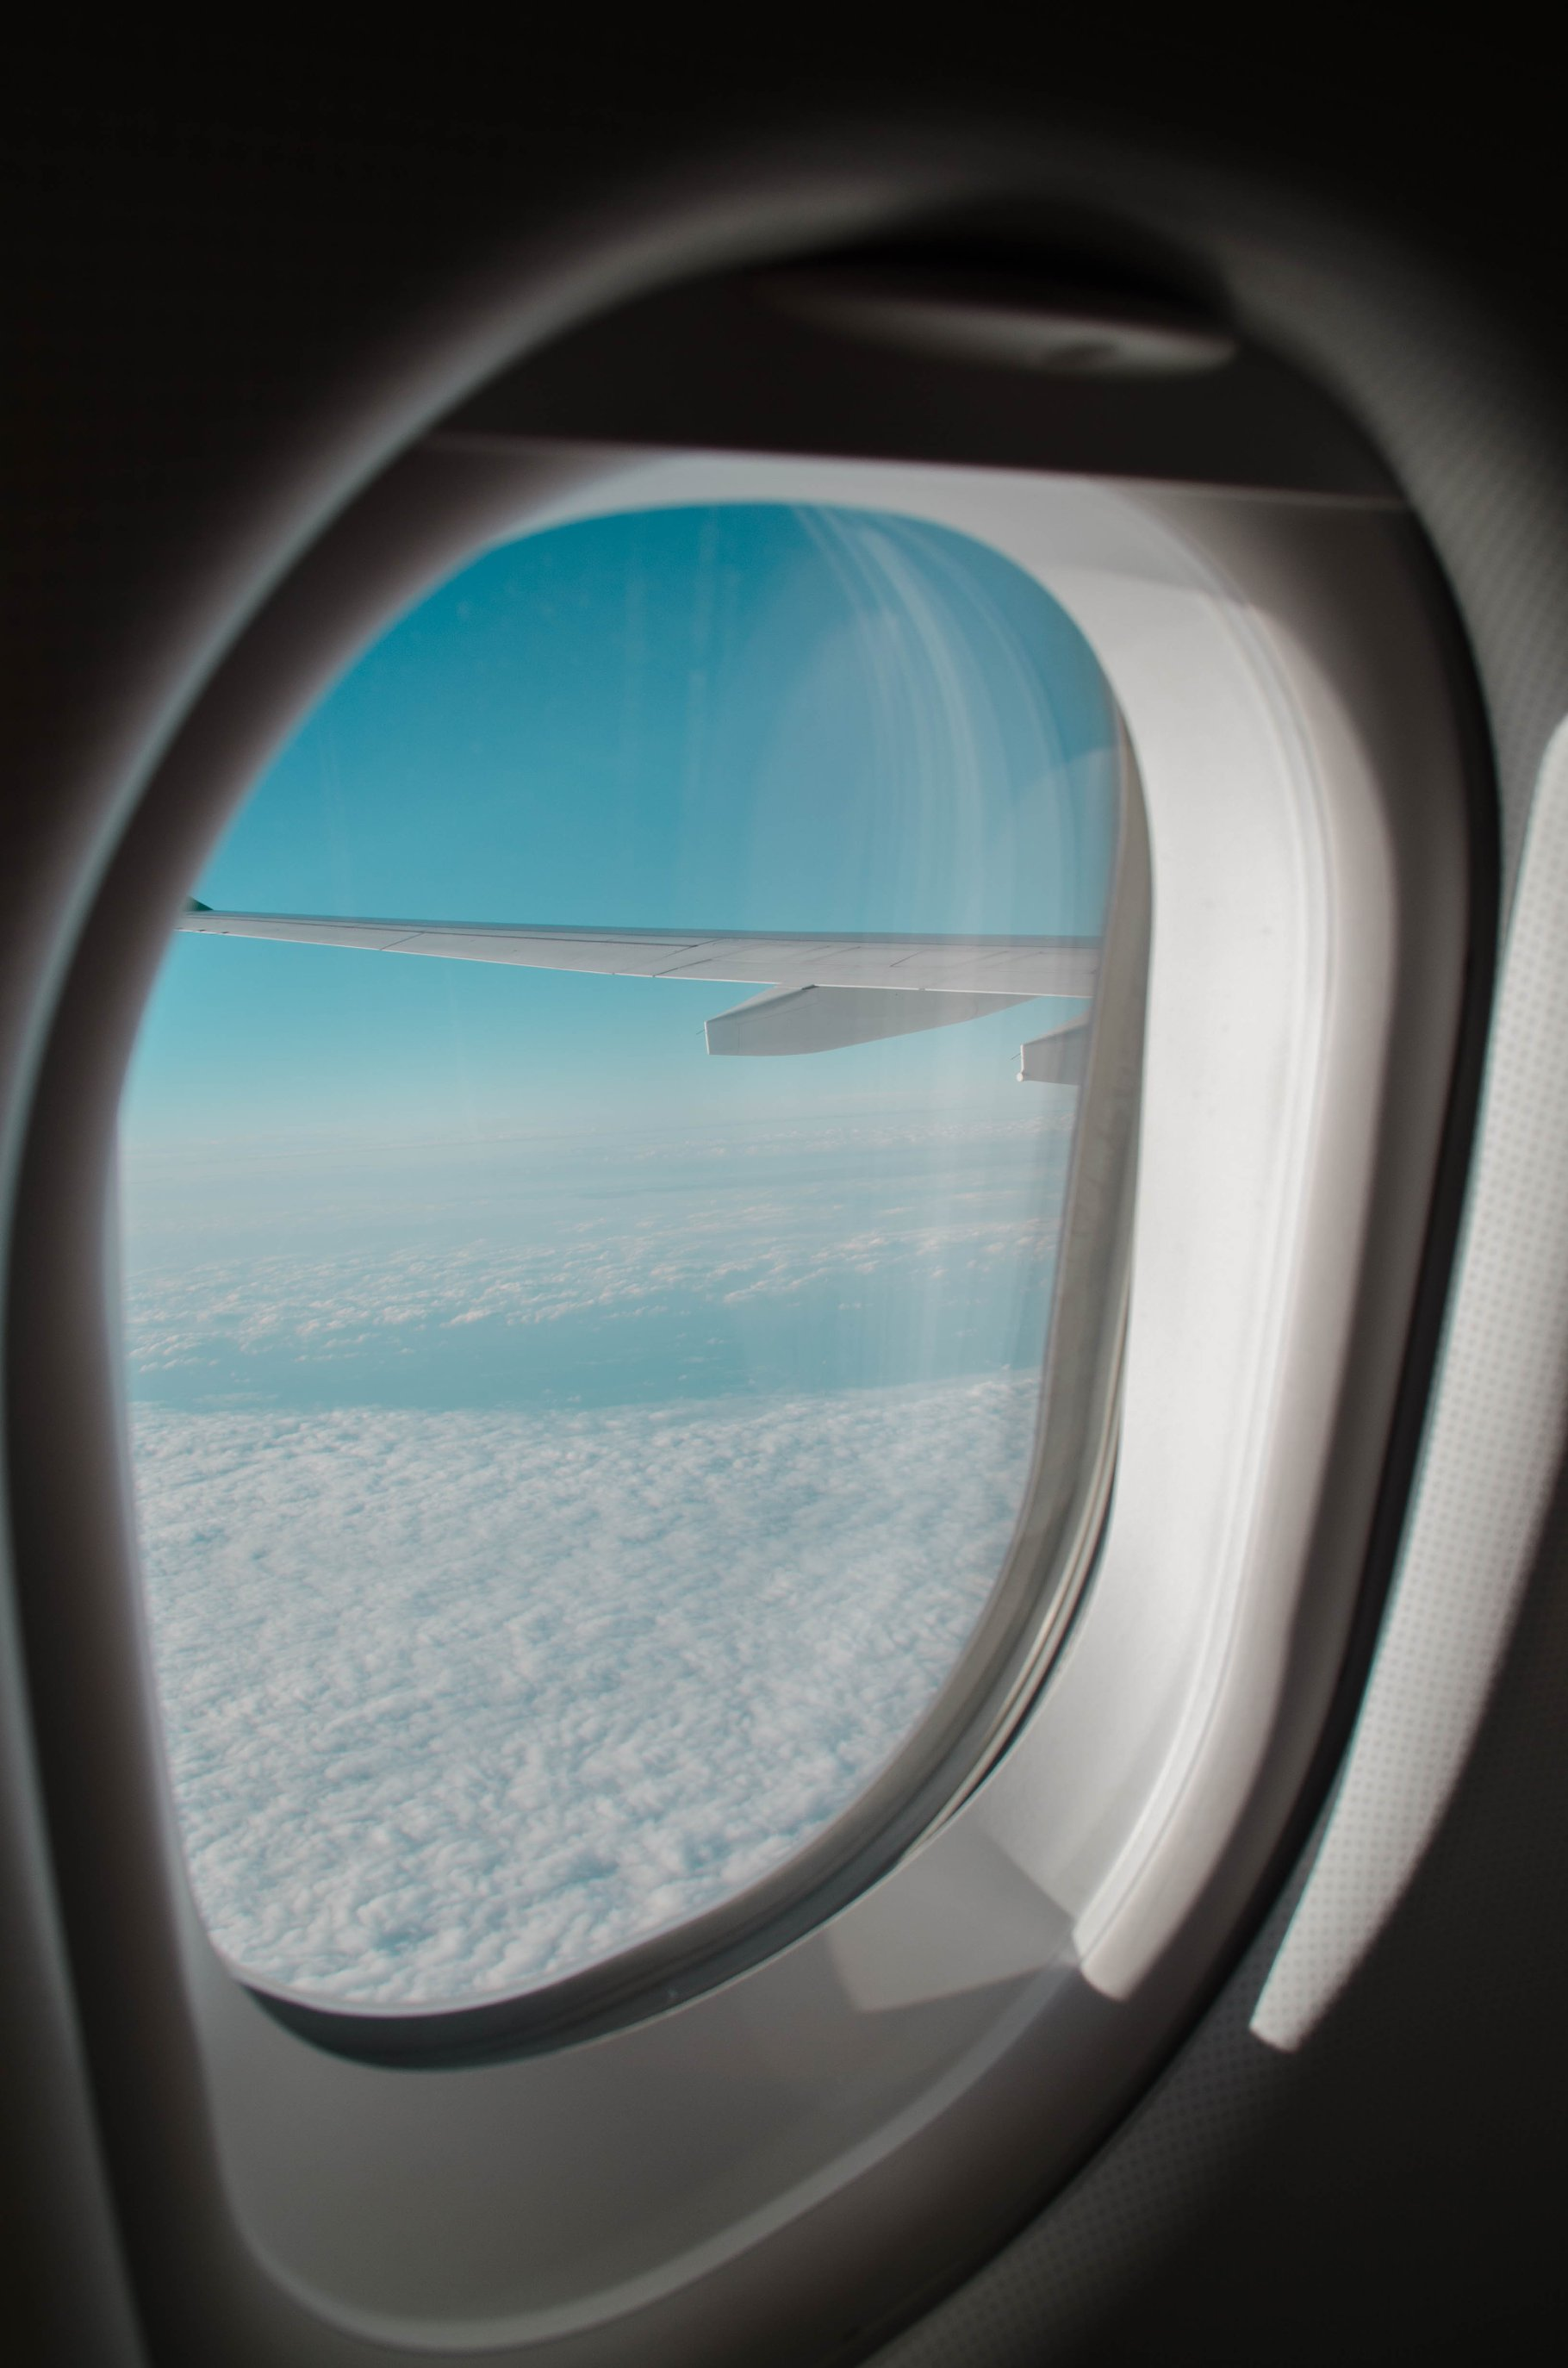 Surprising Airplane Window Seat Gmtry Best Dining Table And Chair Ideas Images Gmtryco